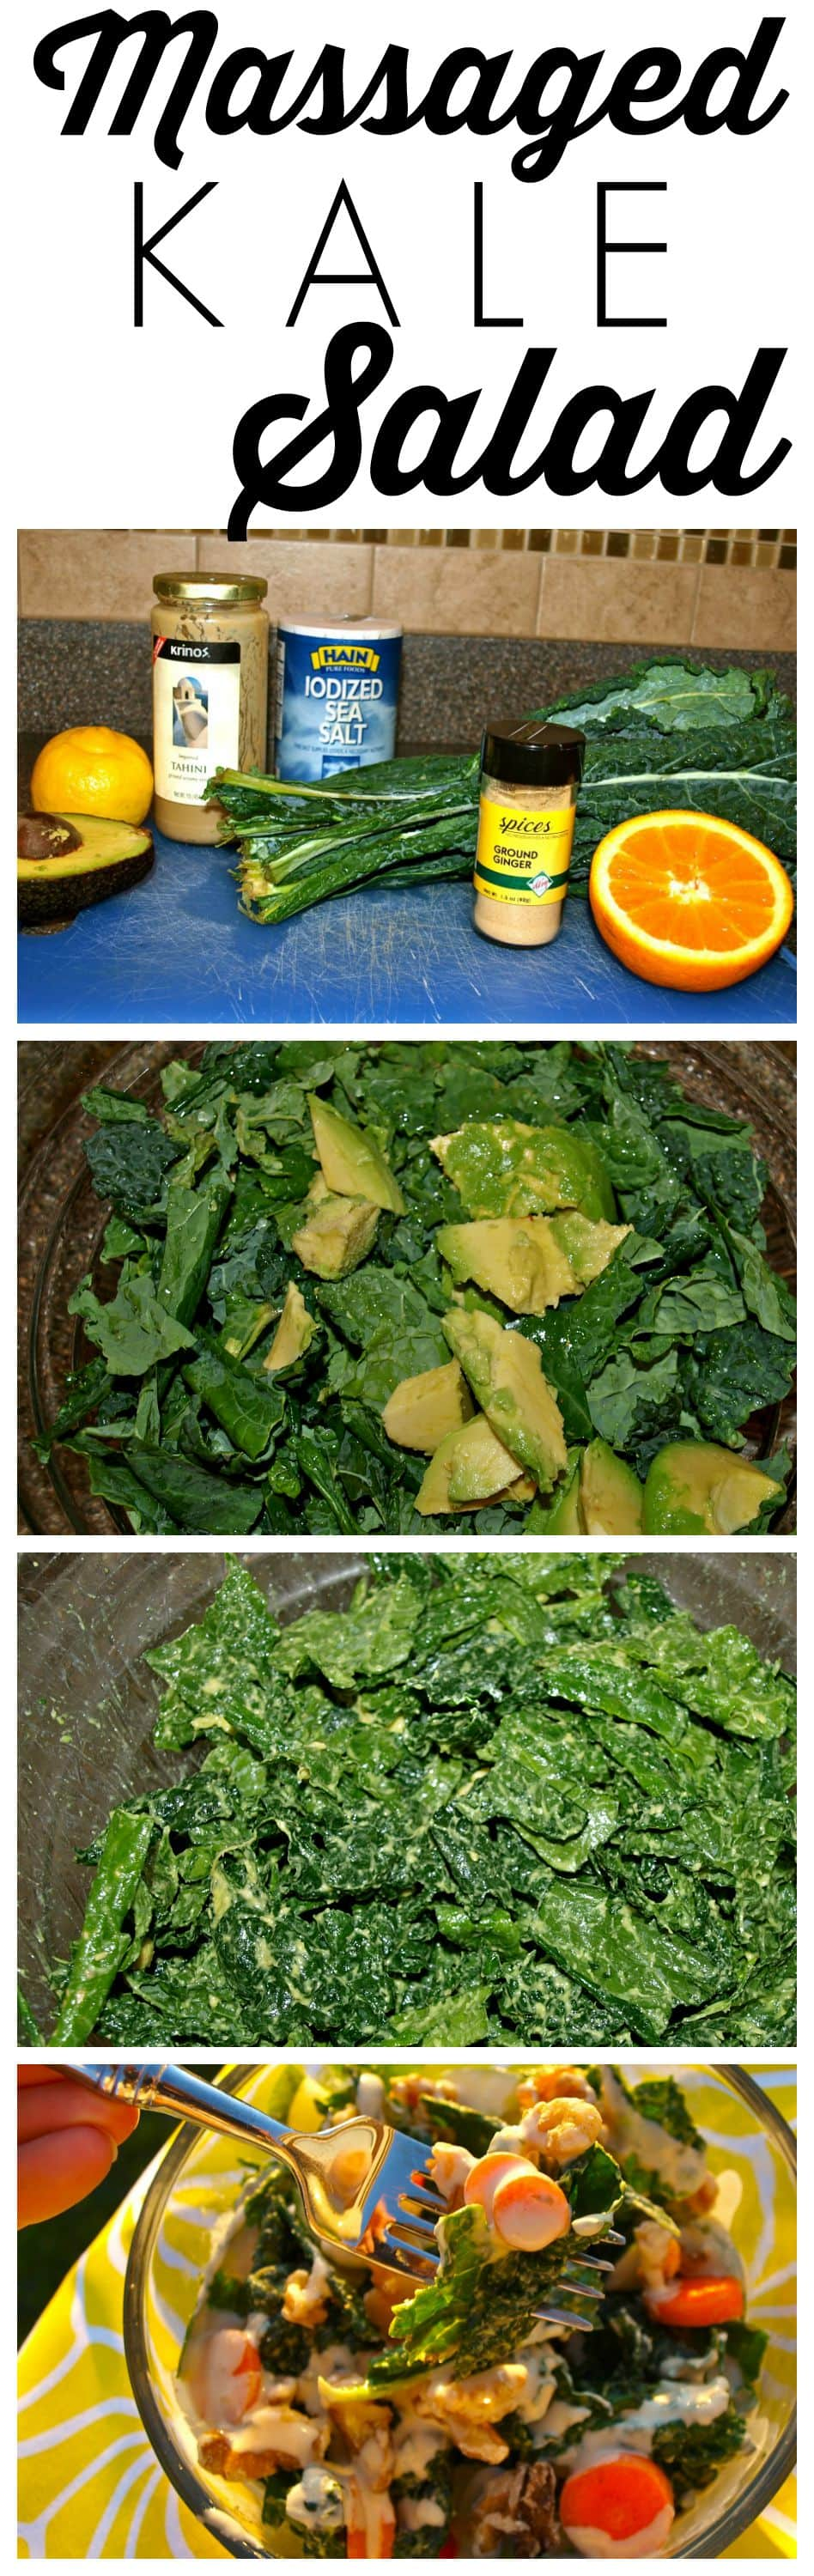 Massaged Kale Salad with Orange Tahini Dressing. A healthy and delicious salad recipe!